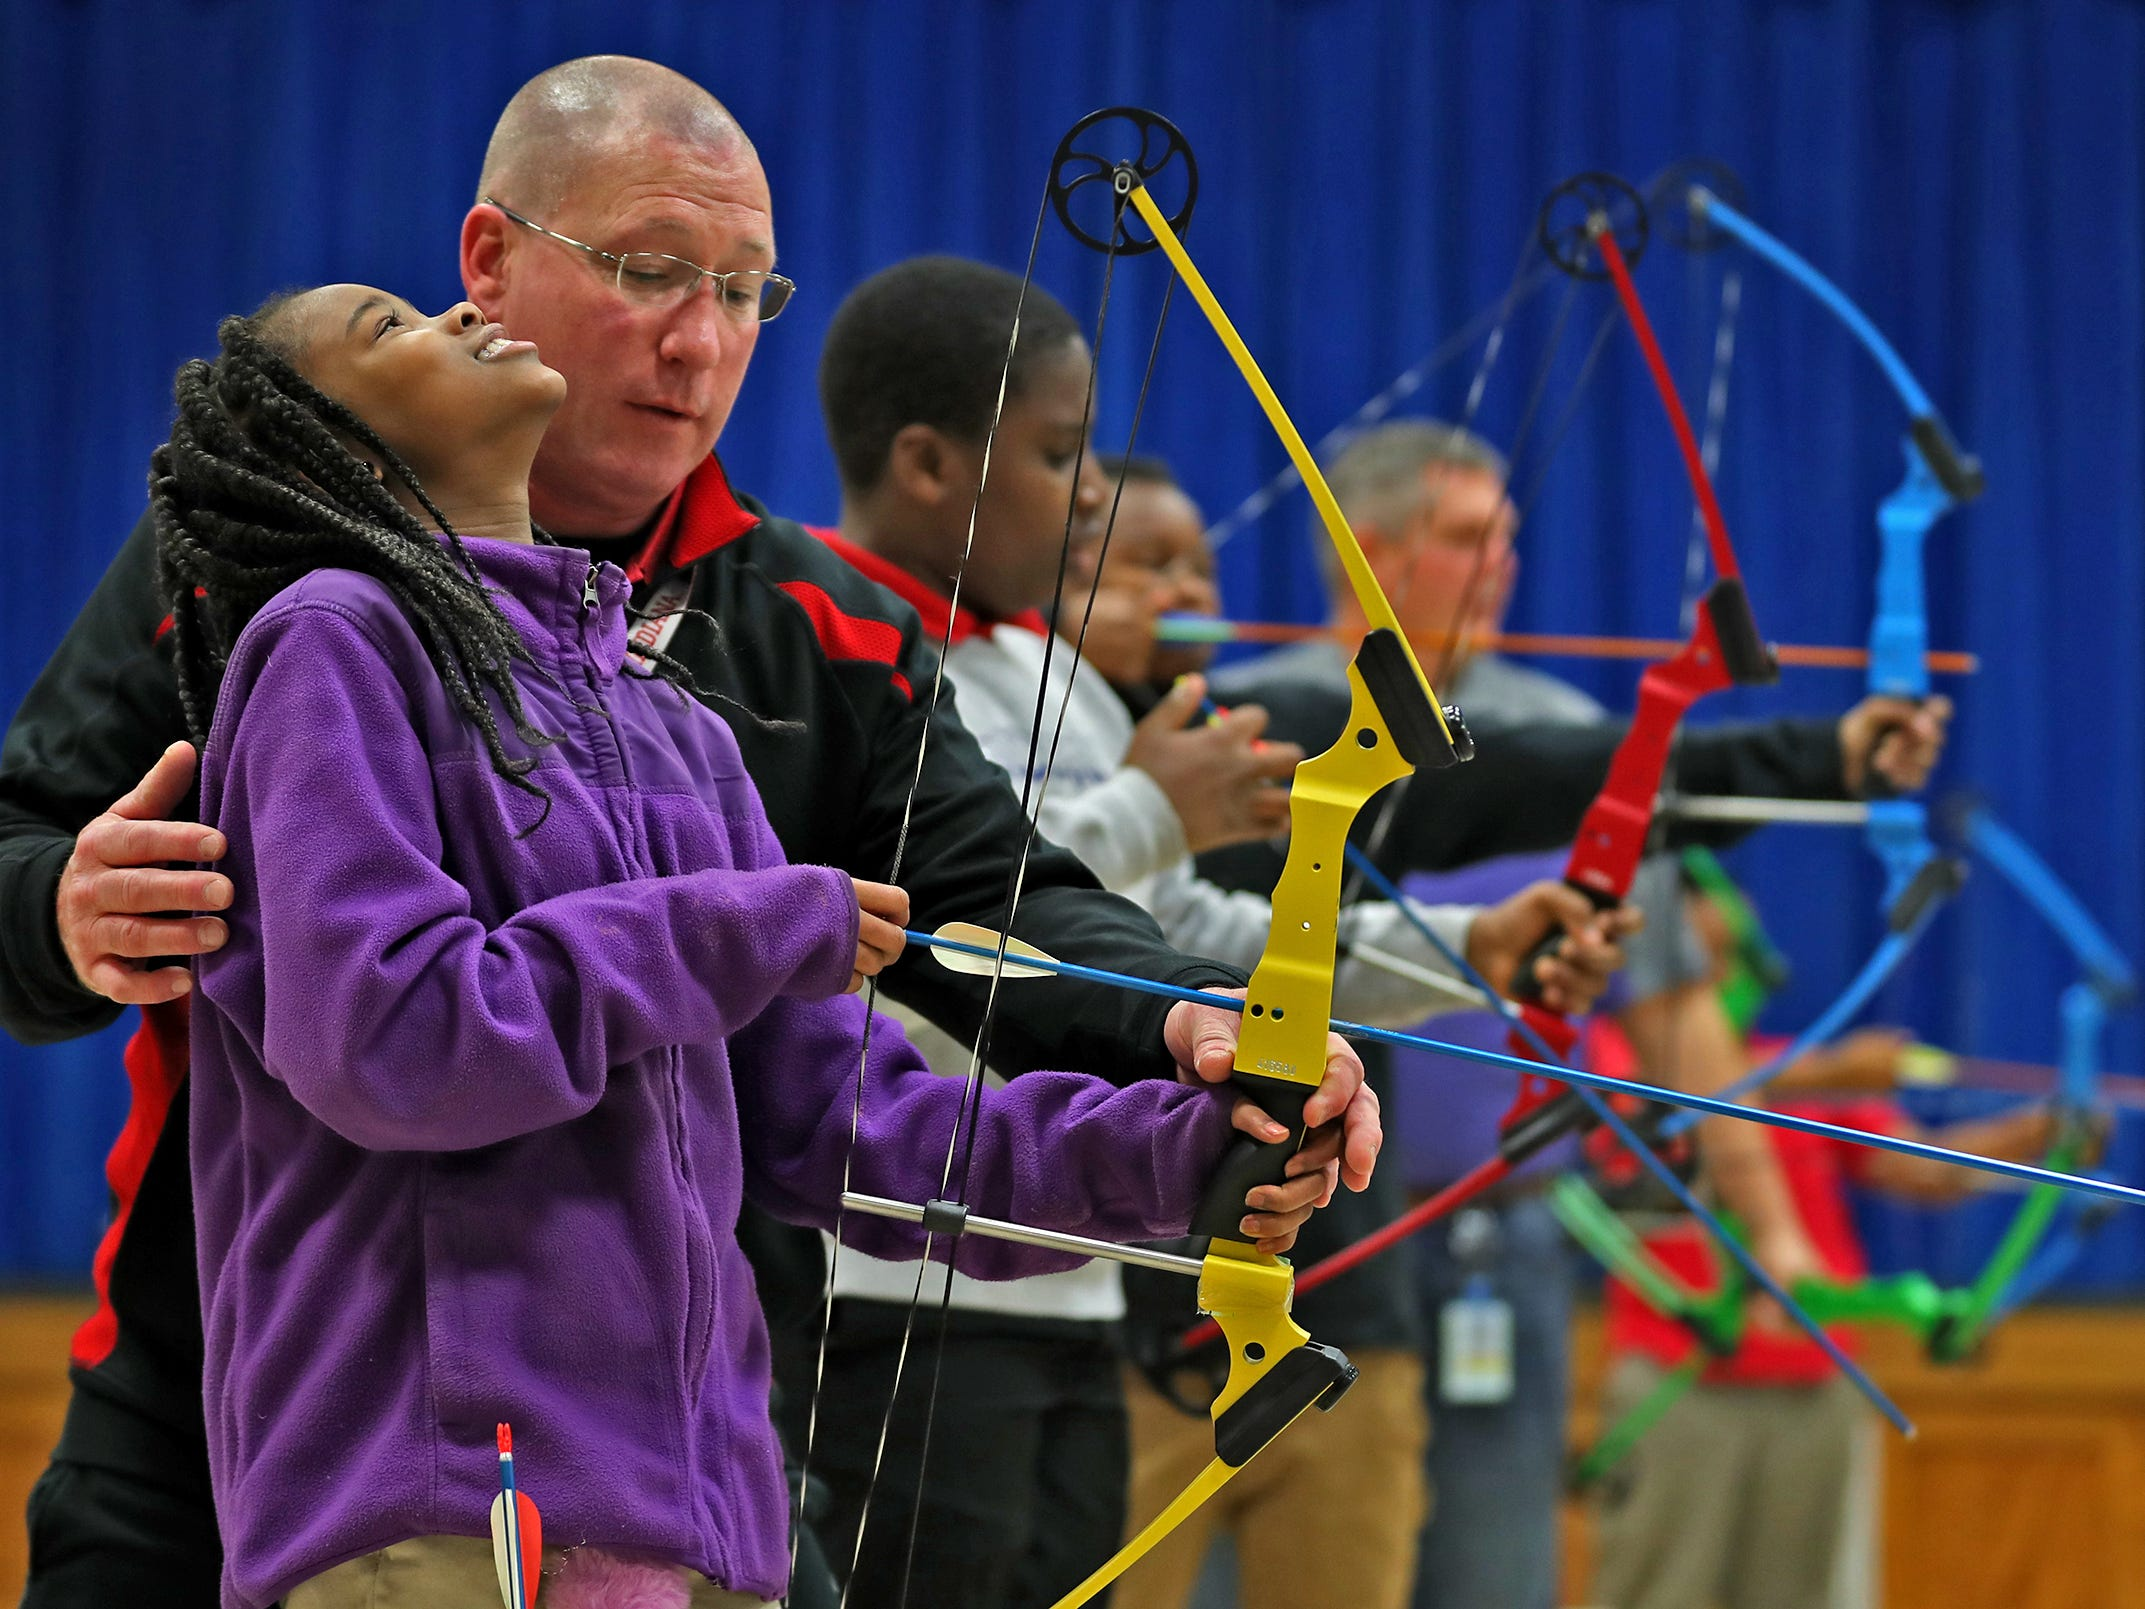 William Crawford helps Brianna Smith with her shooting stance during archery class at Lew Wallace Elementary IPS 107, Thursday, Dec. 20, 2018.